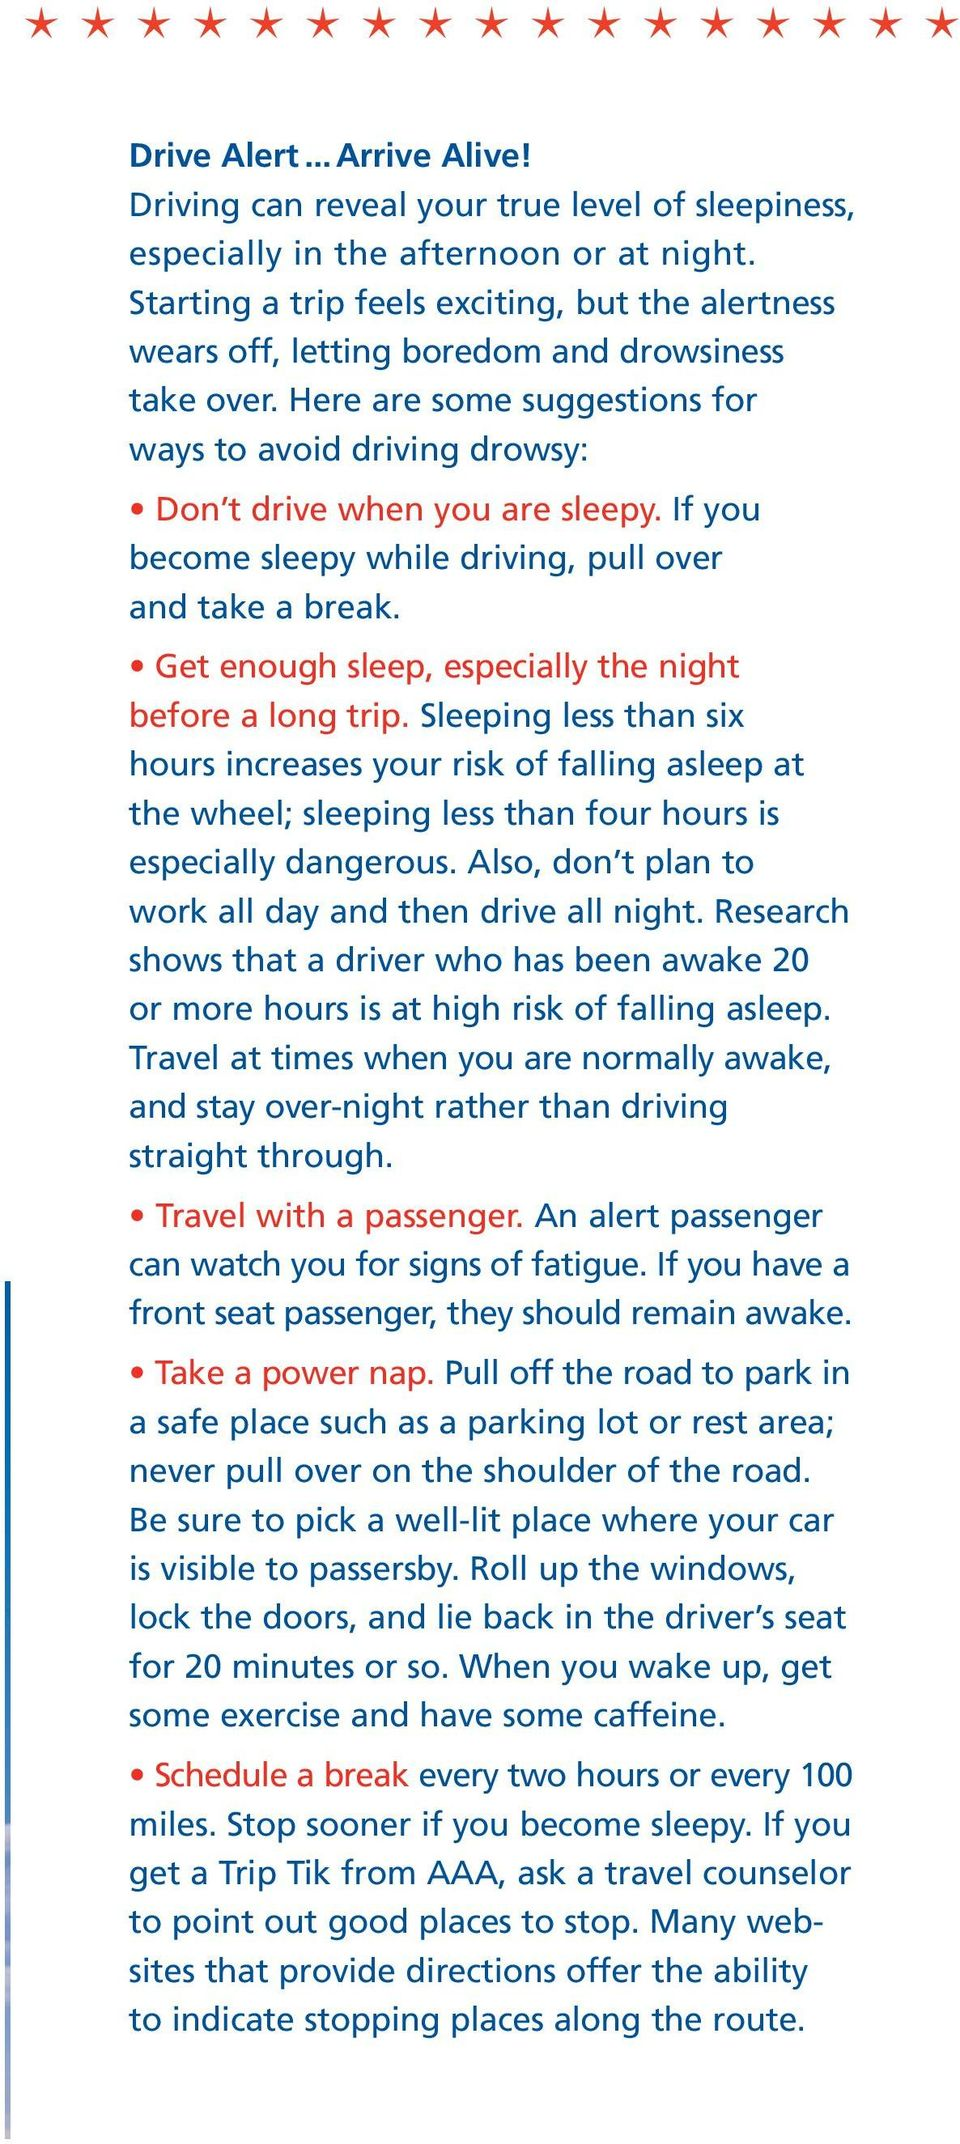 If you become sleepy while driving, pull over and take a break. Get enough sleep, especially the night before a long trip.